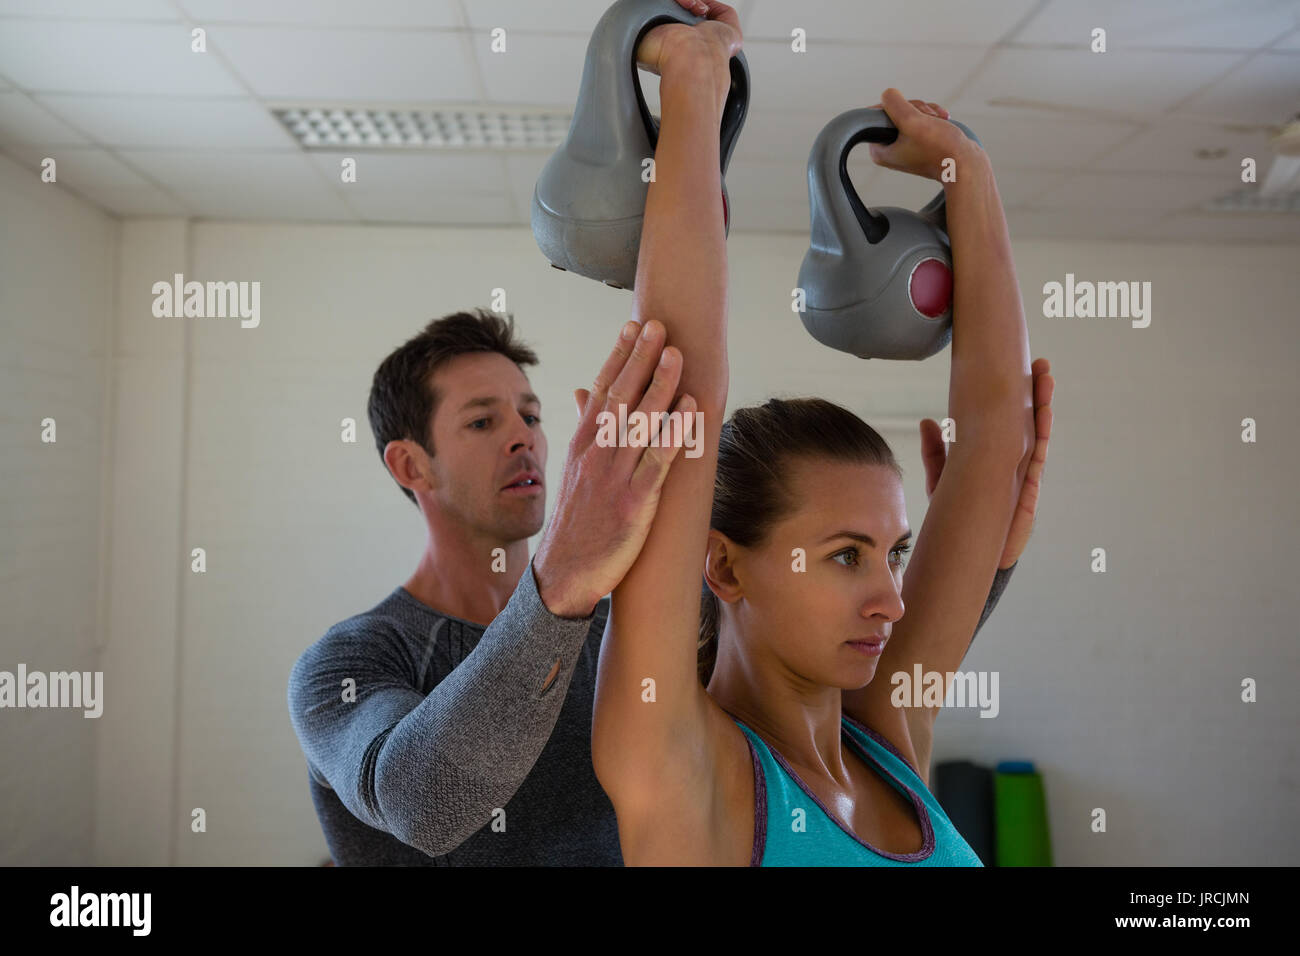 Trainer assisting female athlete in lifting kettlebells at gym - Stock Image